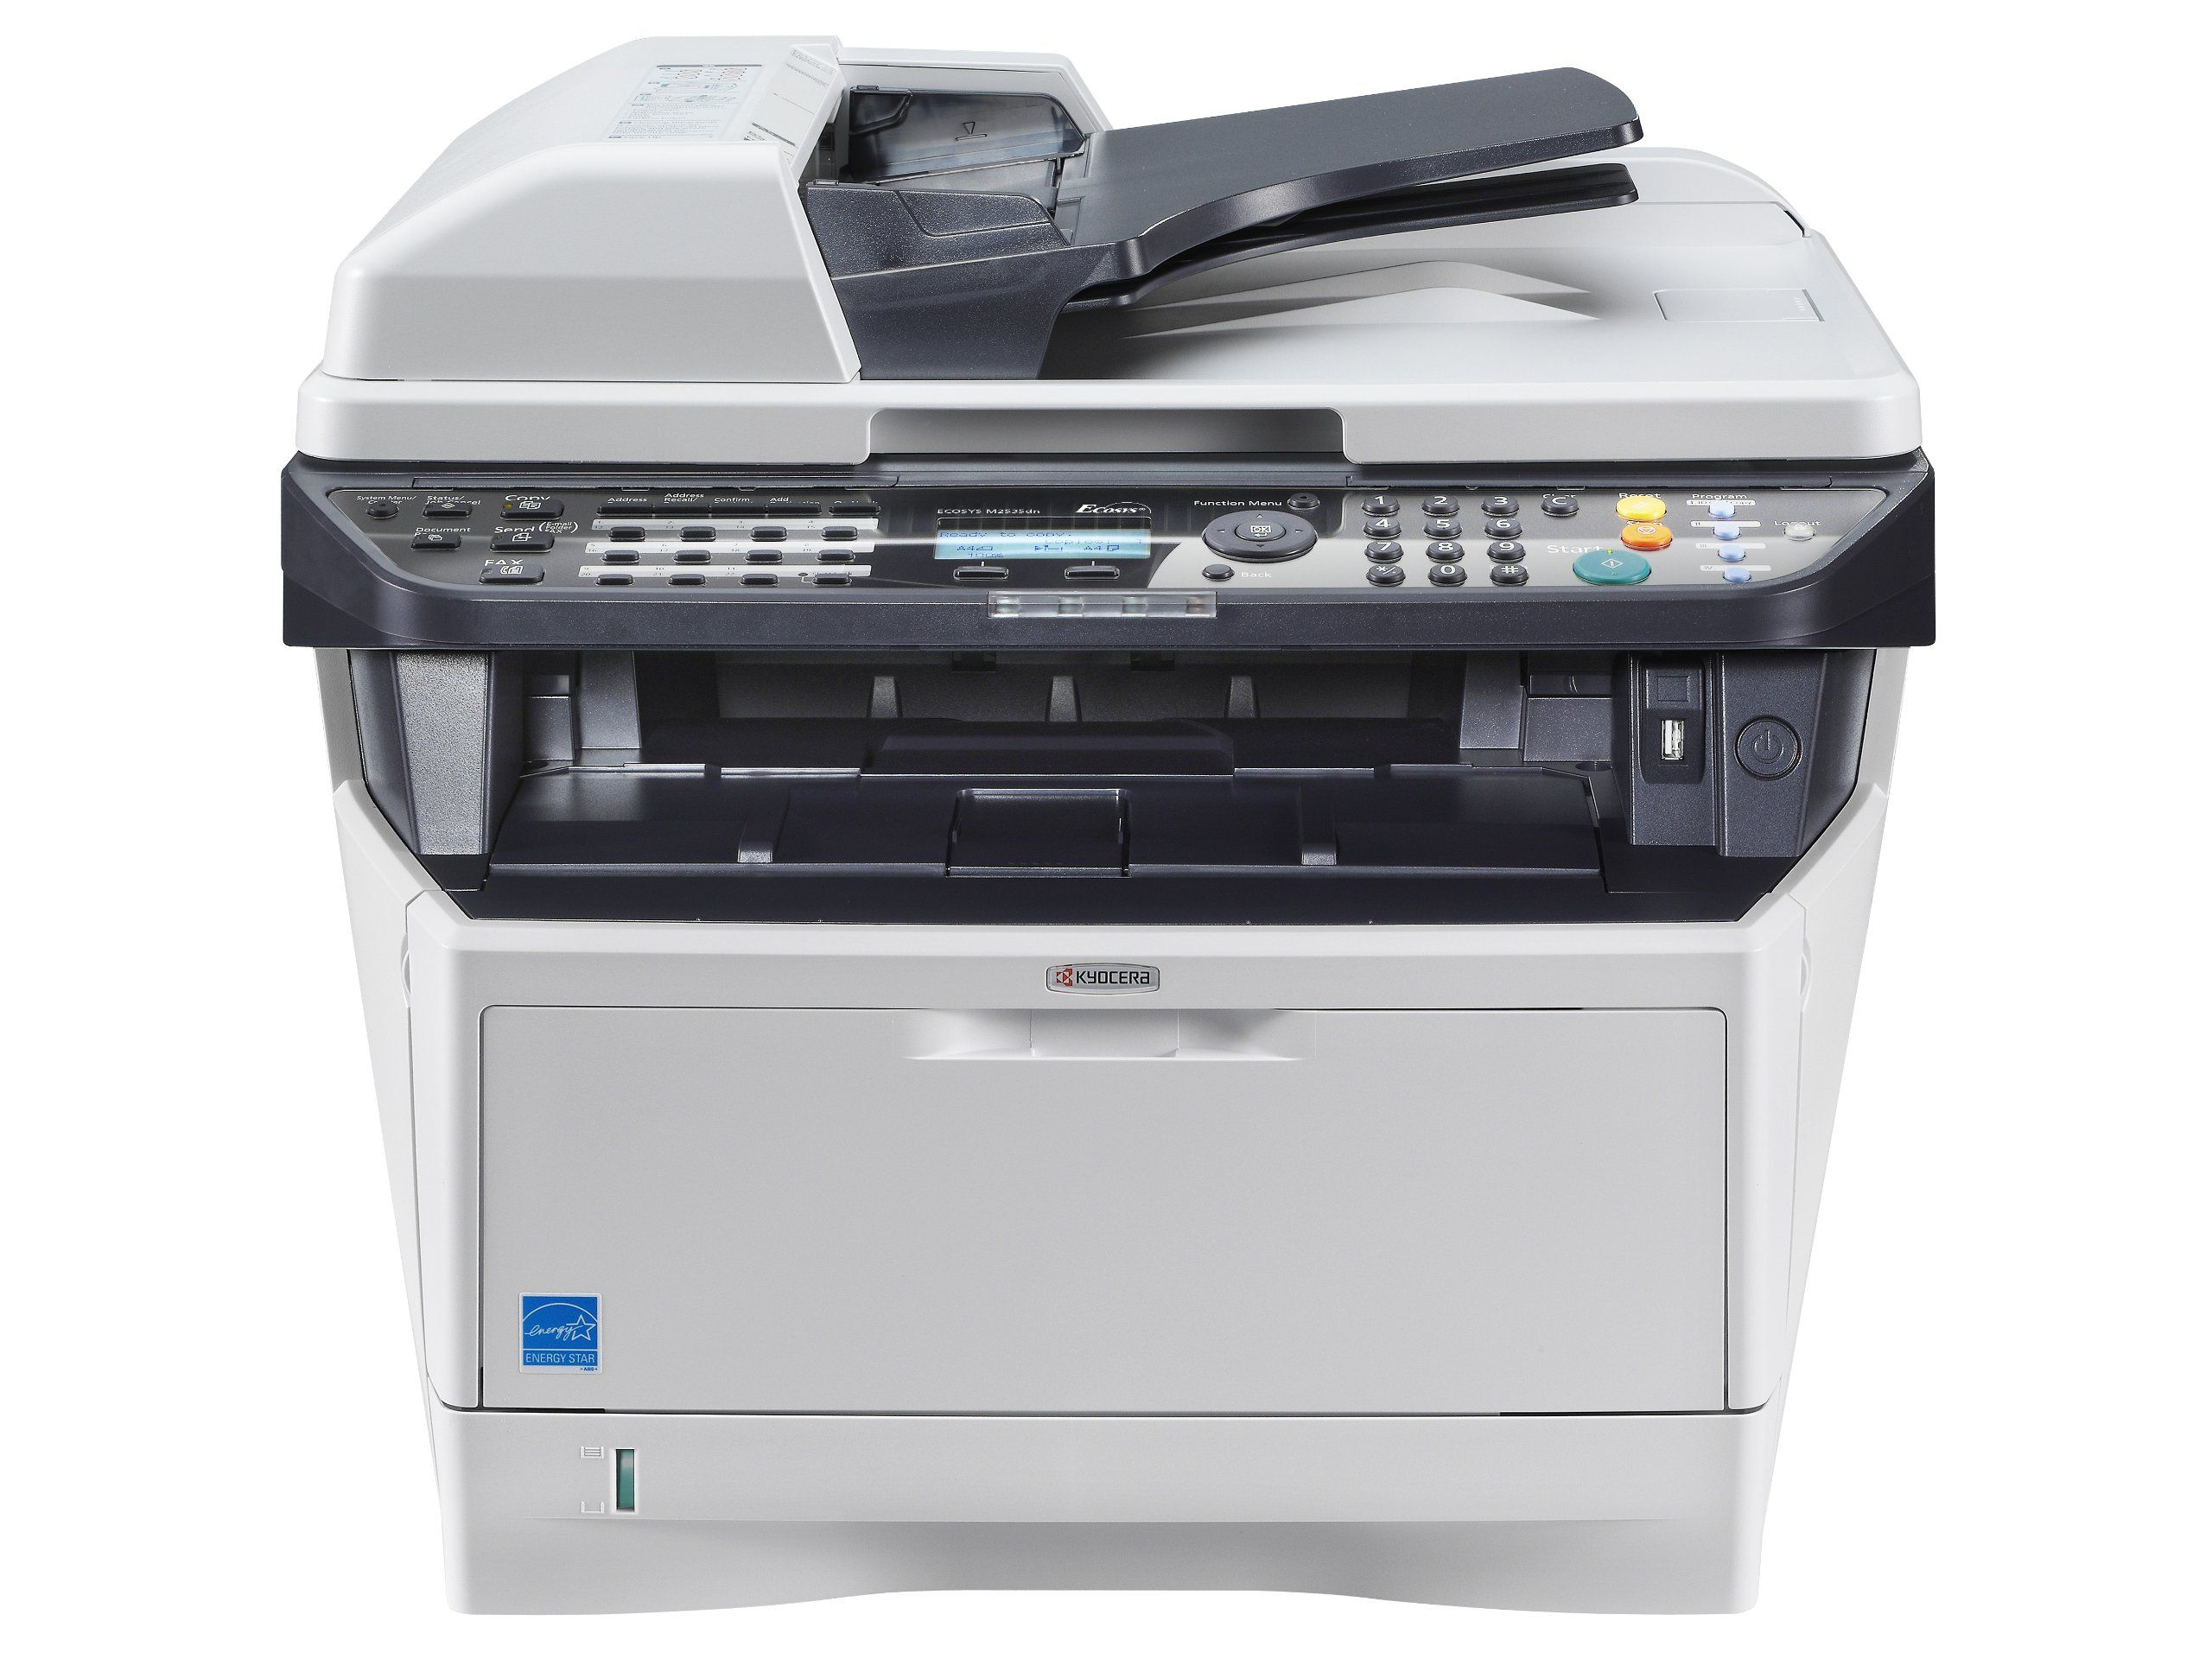 Kyocera Ecosys M2035dn Laser Multifunction Printer Monochrome